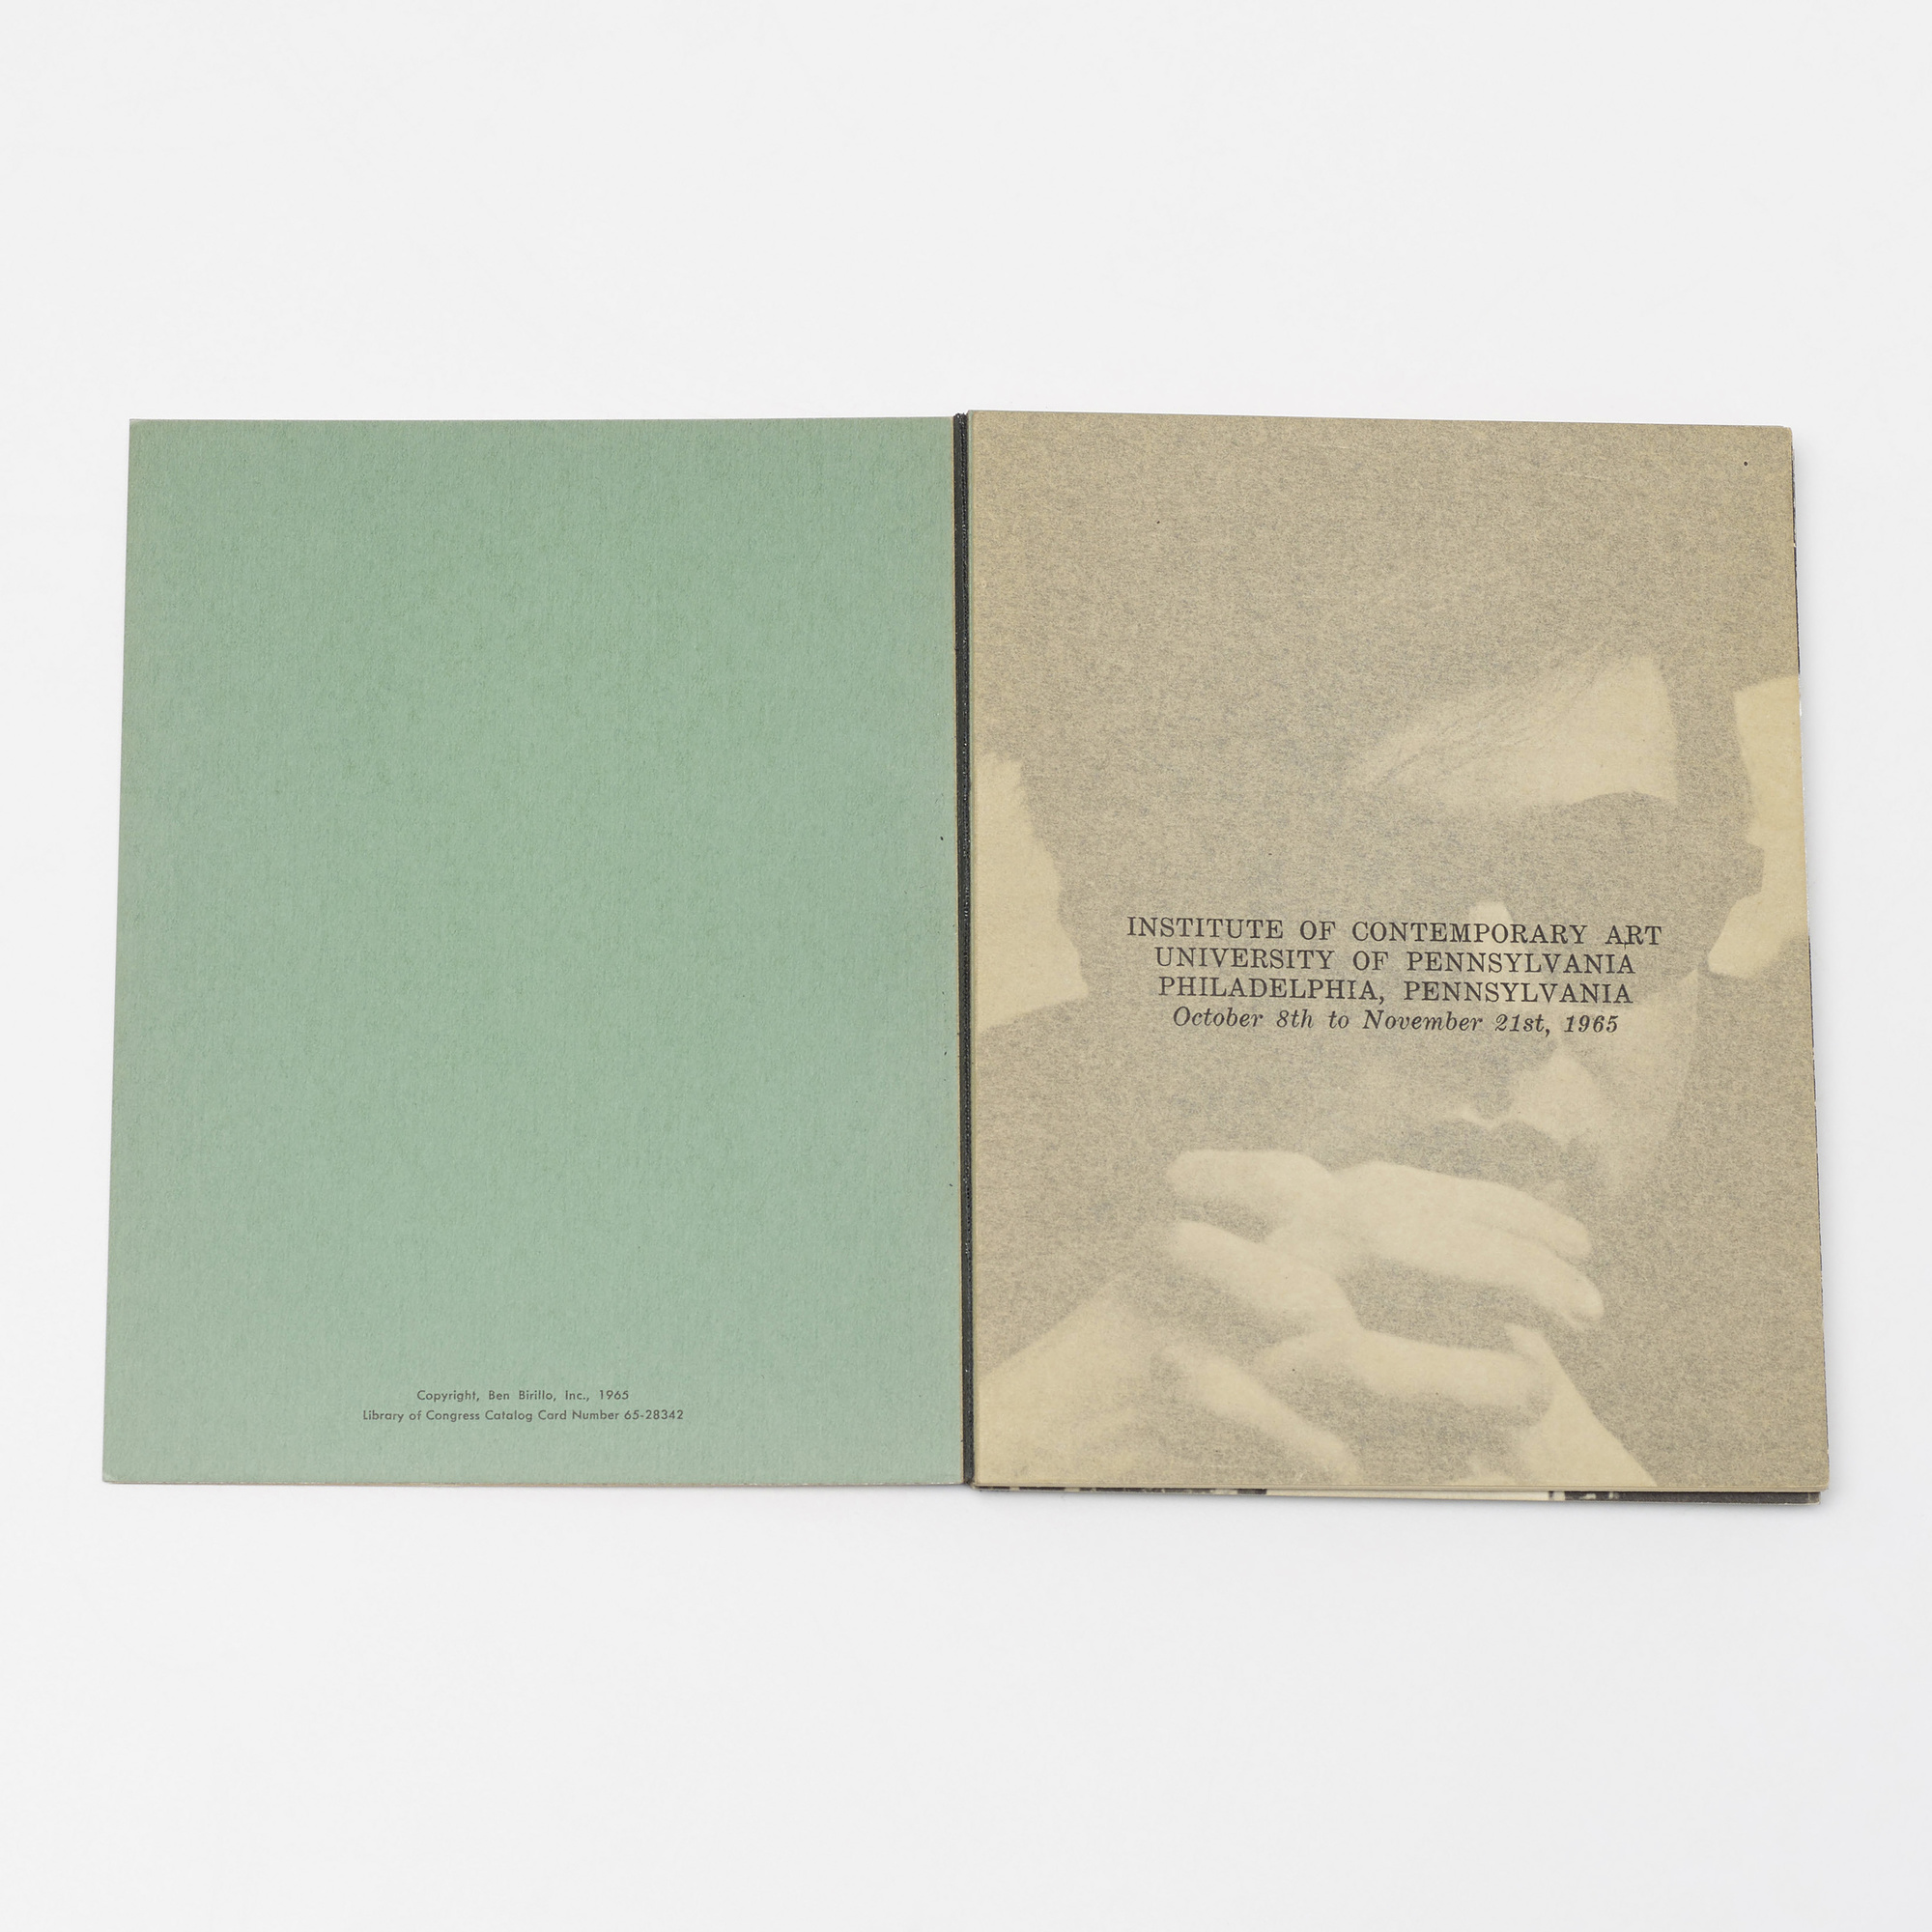 115: After Andy Warhol / exhibition catalog (2 of 4)